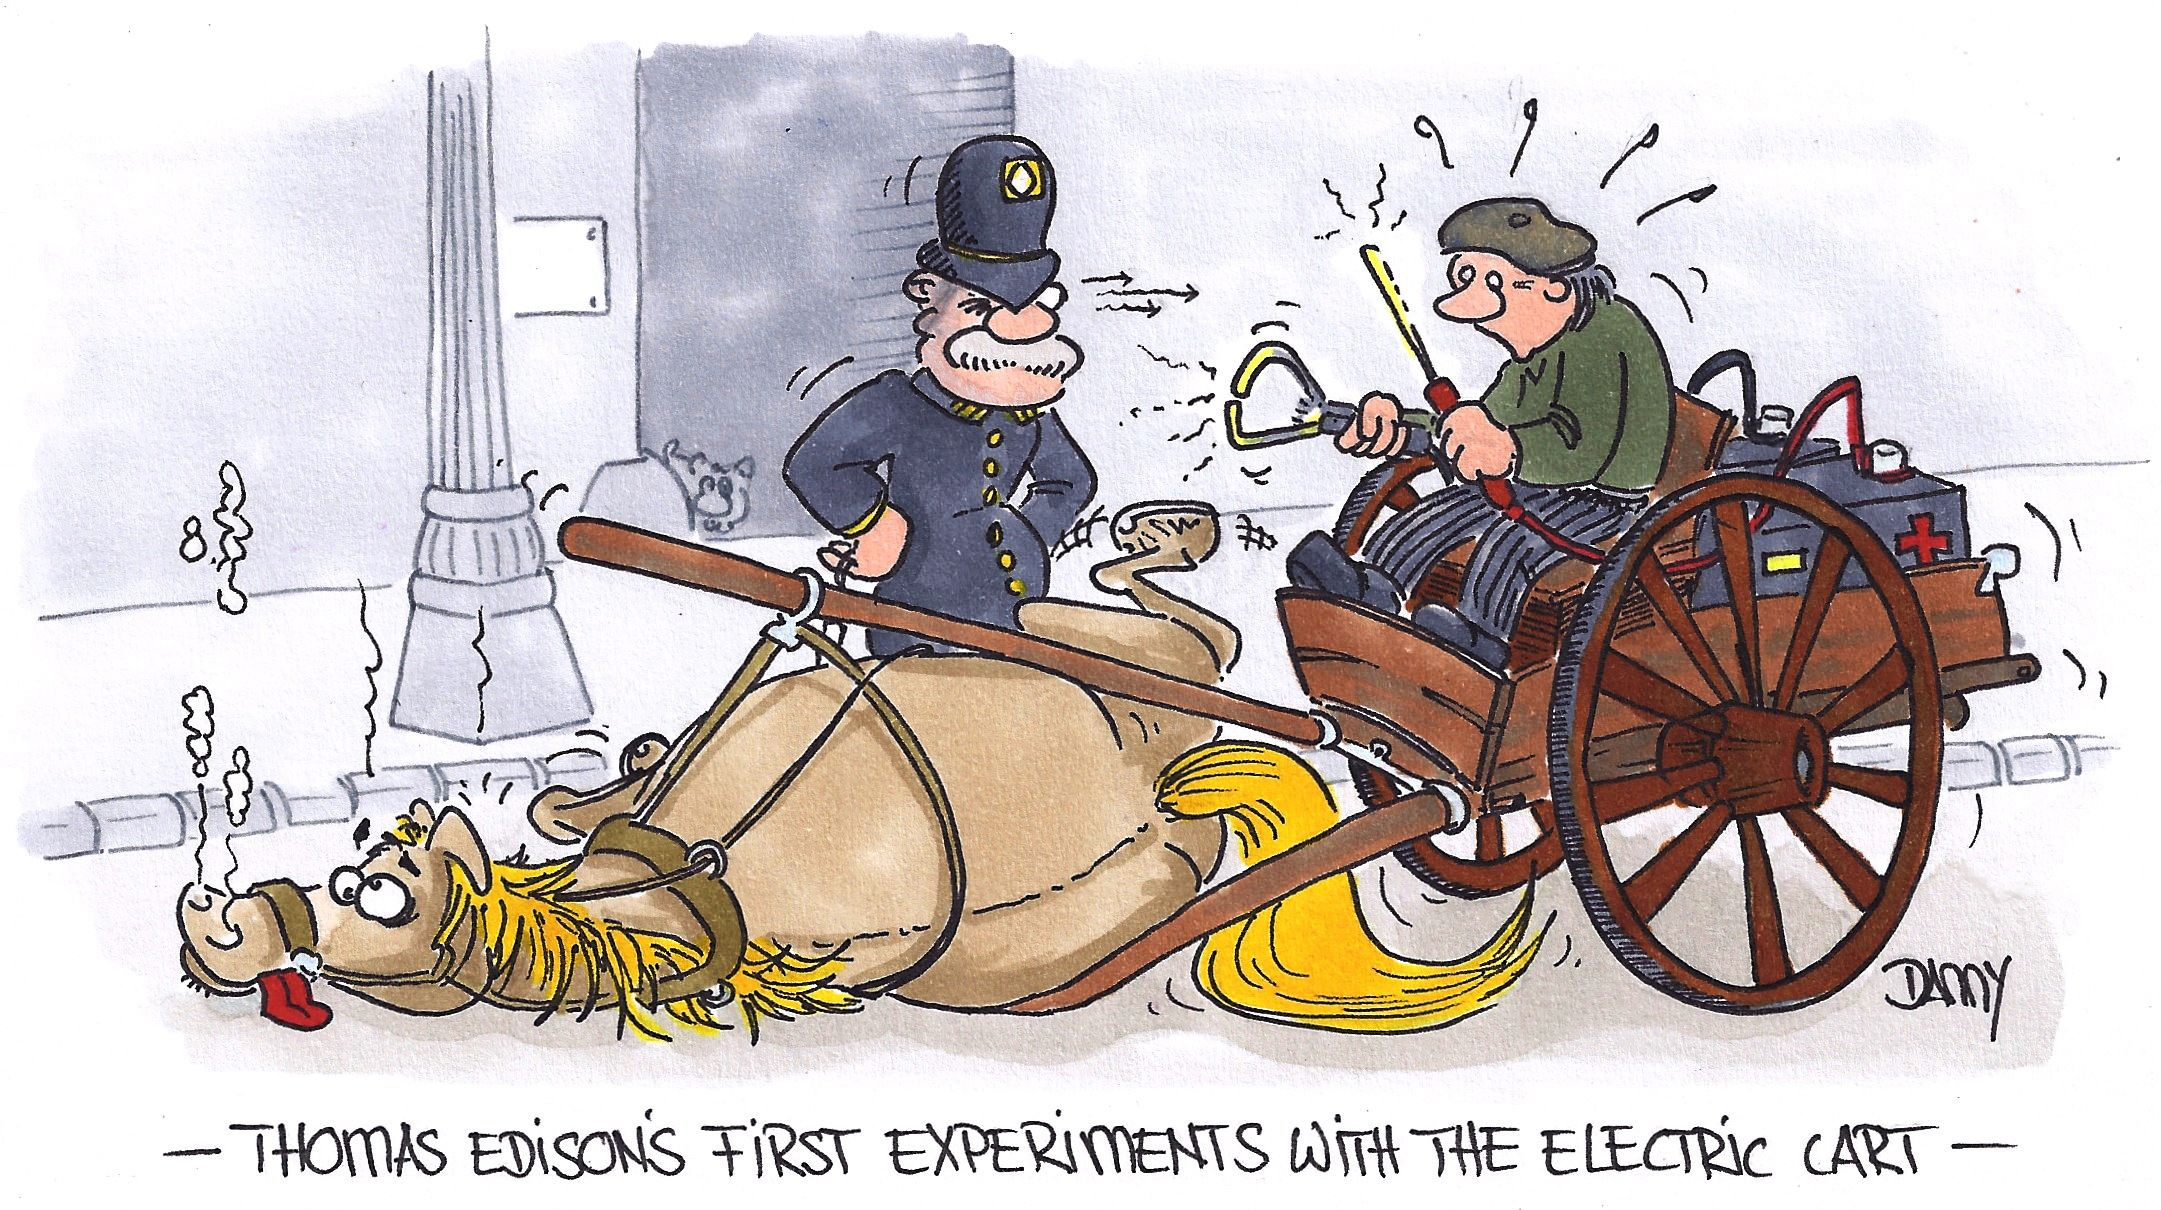 Thomas Edison invented the first electric cart. Electric